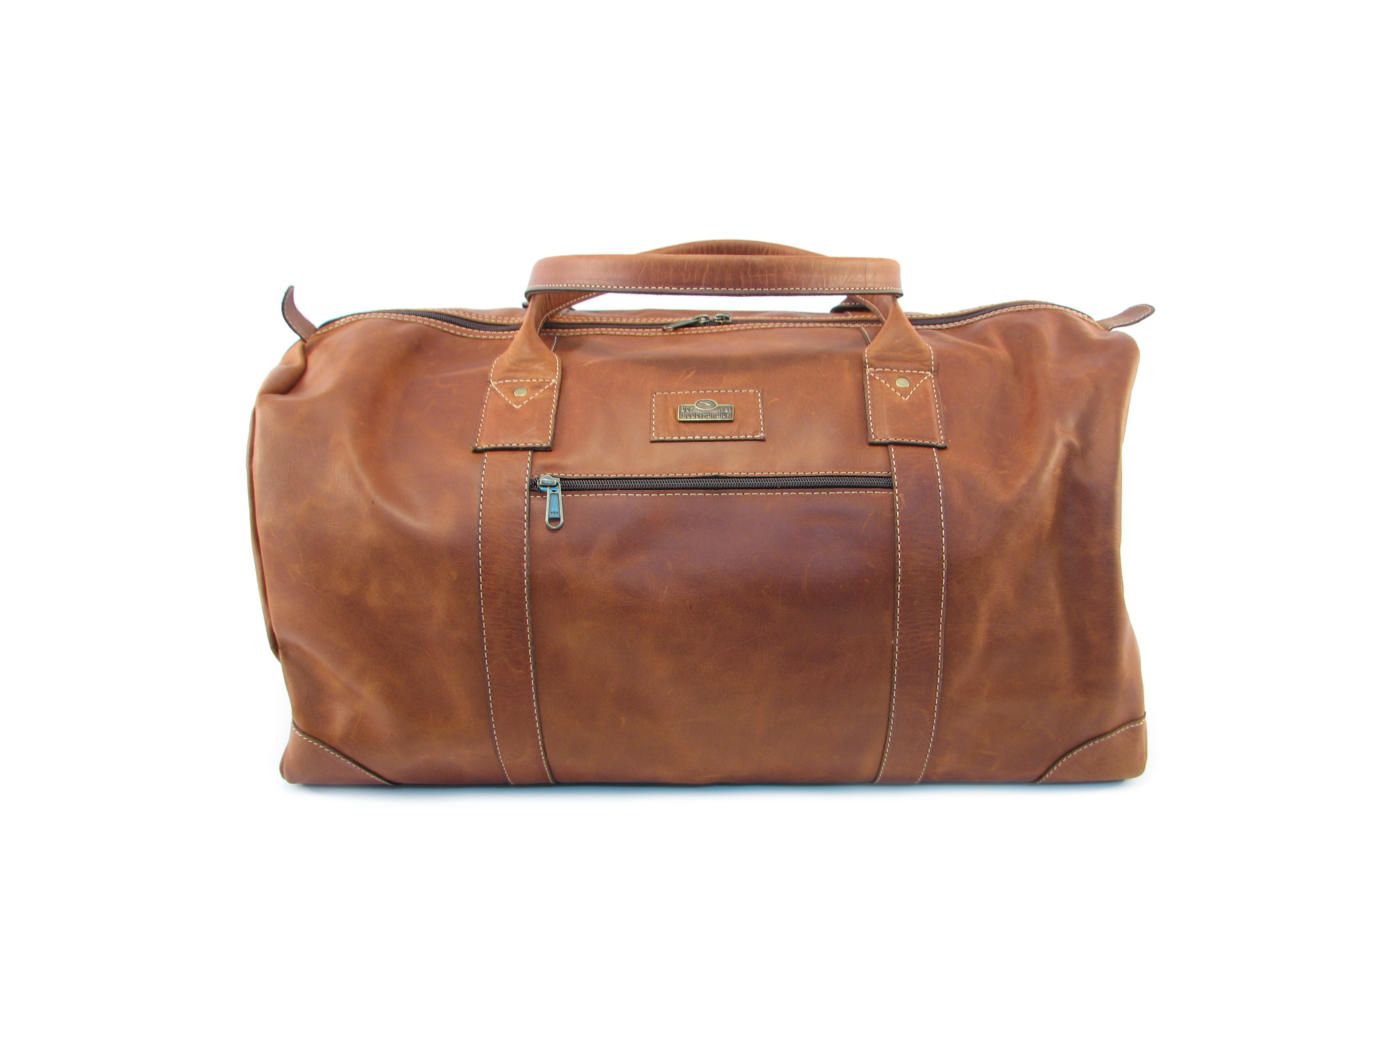 Vintage  leather travel bag - full-grain leather  3efd0cc8b76ab